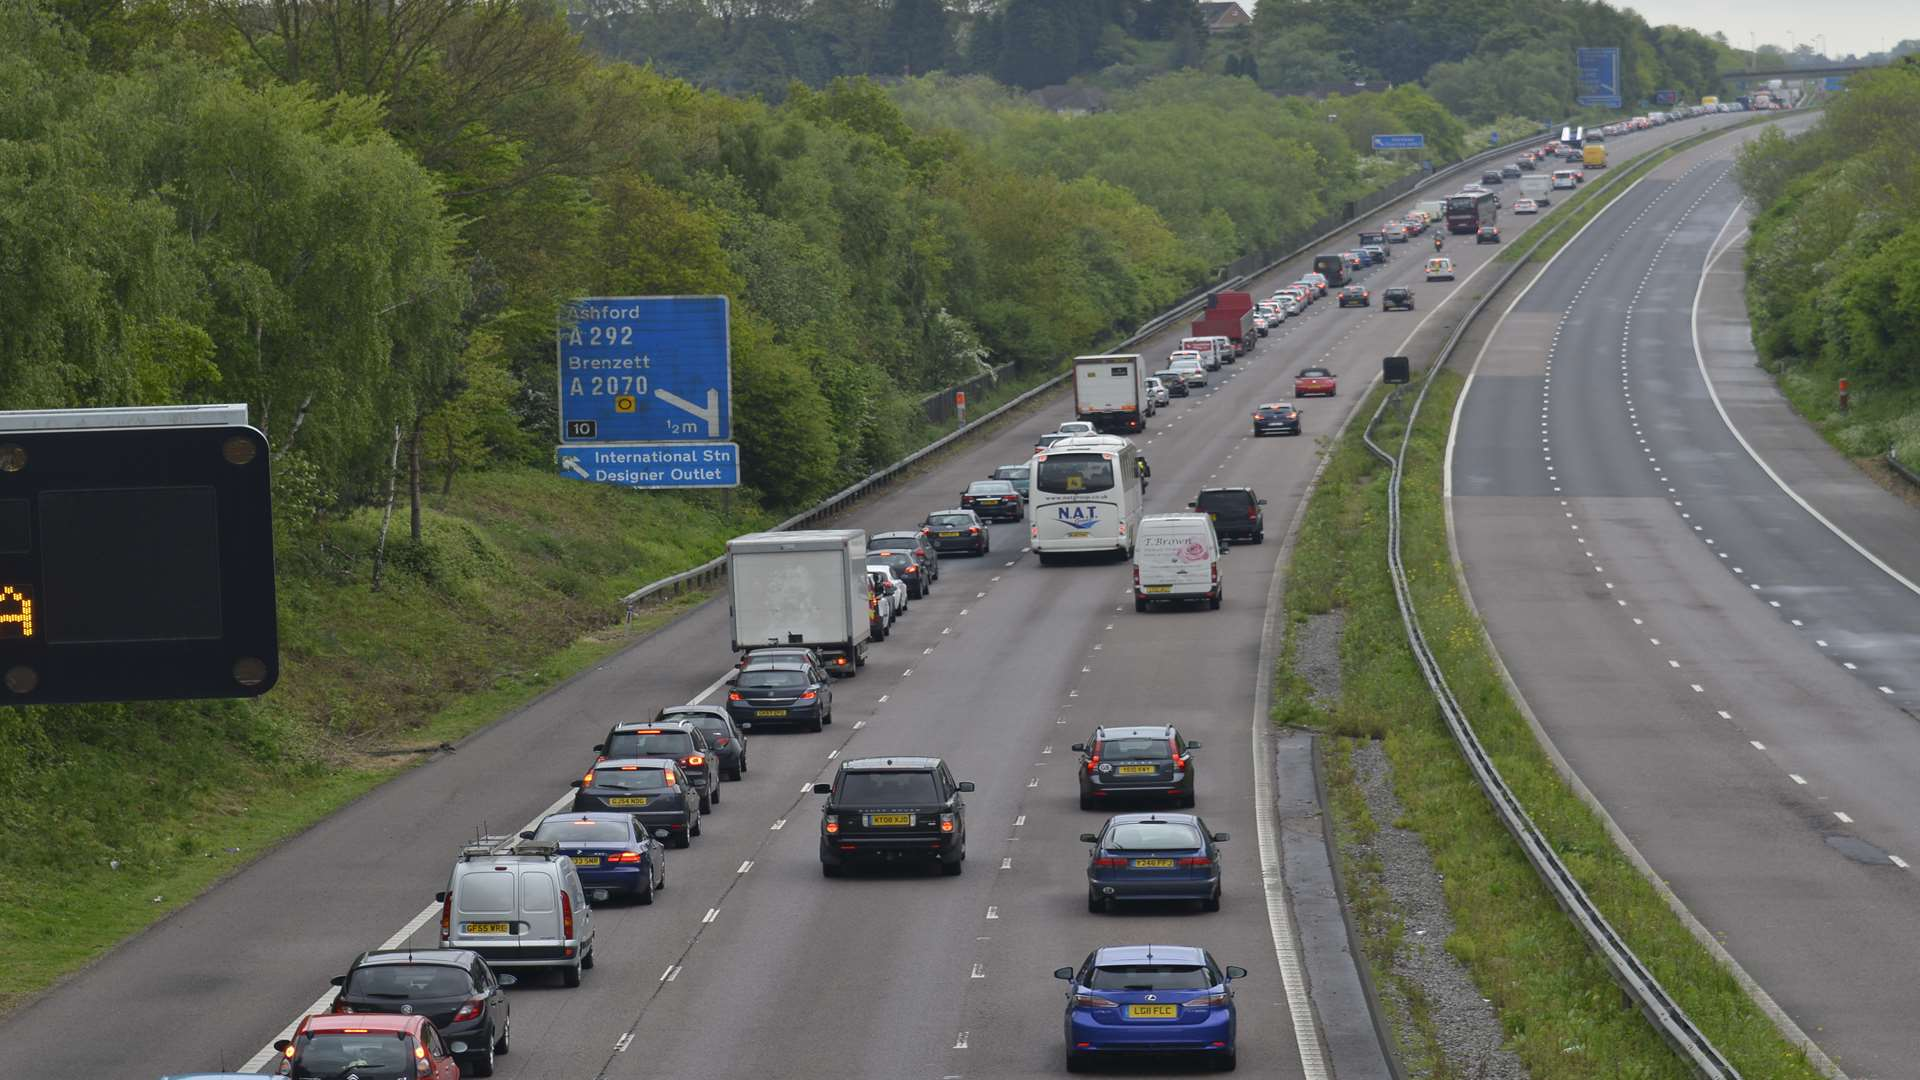 The M20 between junction 9 and 10 at Ashford.